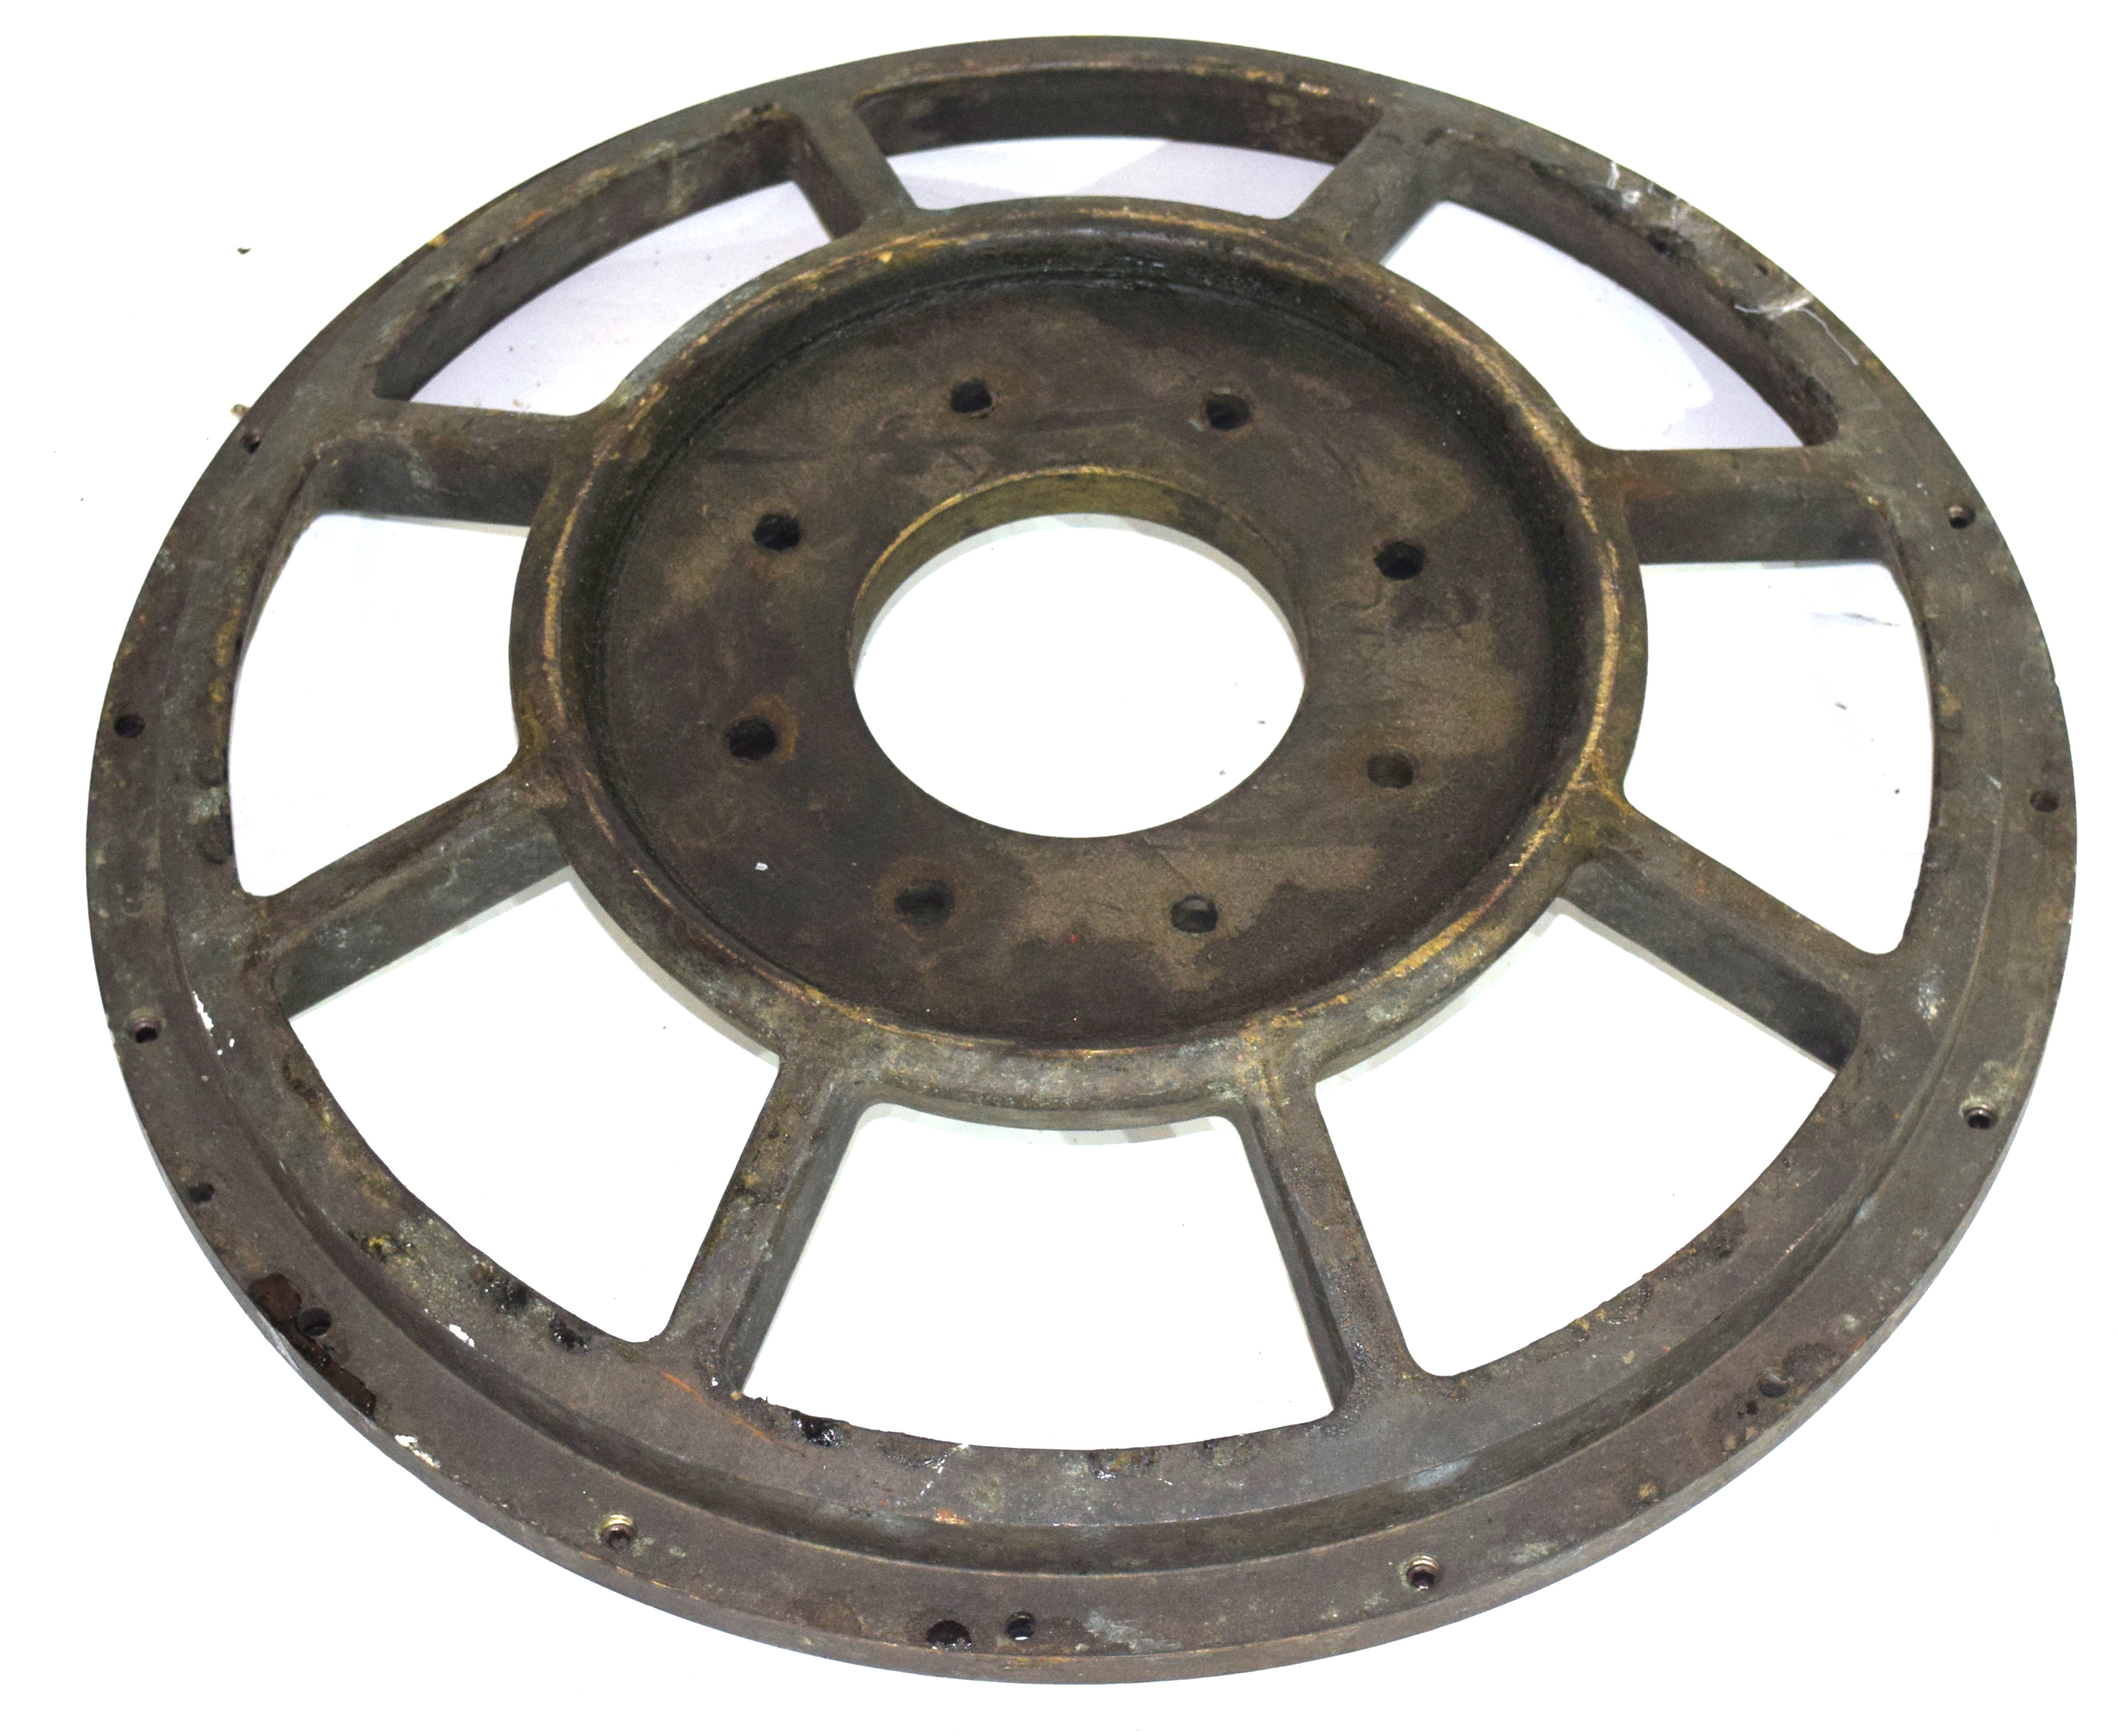 Bronze wheel, diam approx 40cm Condition: Appears to be structurally sound